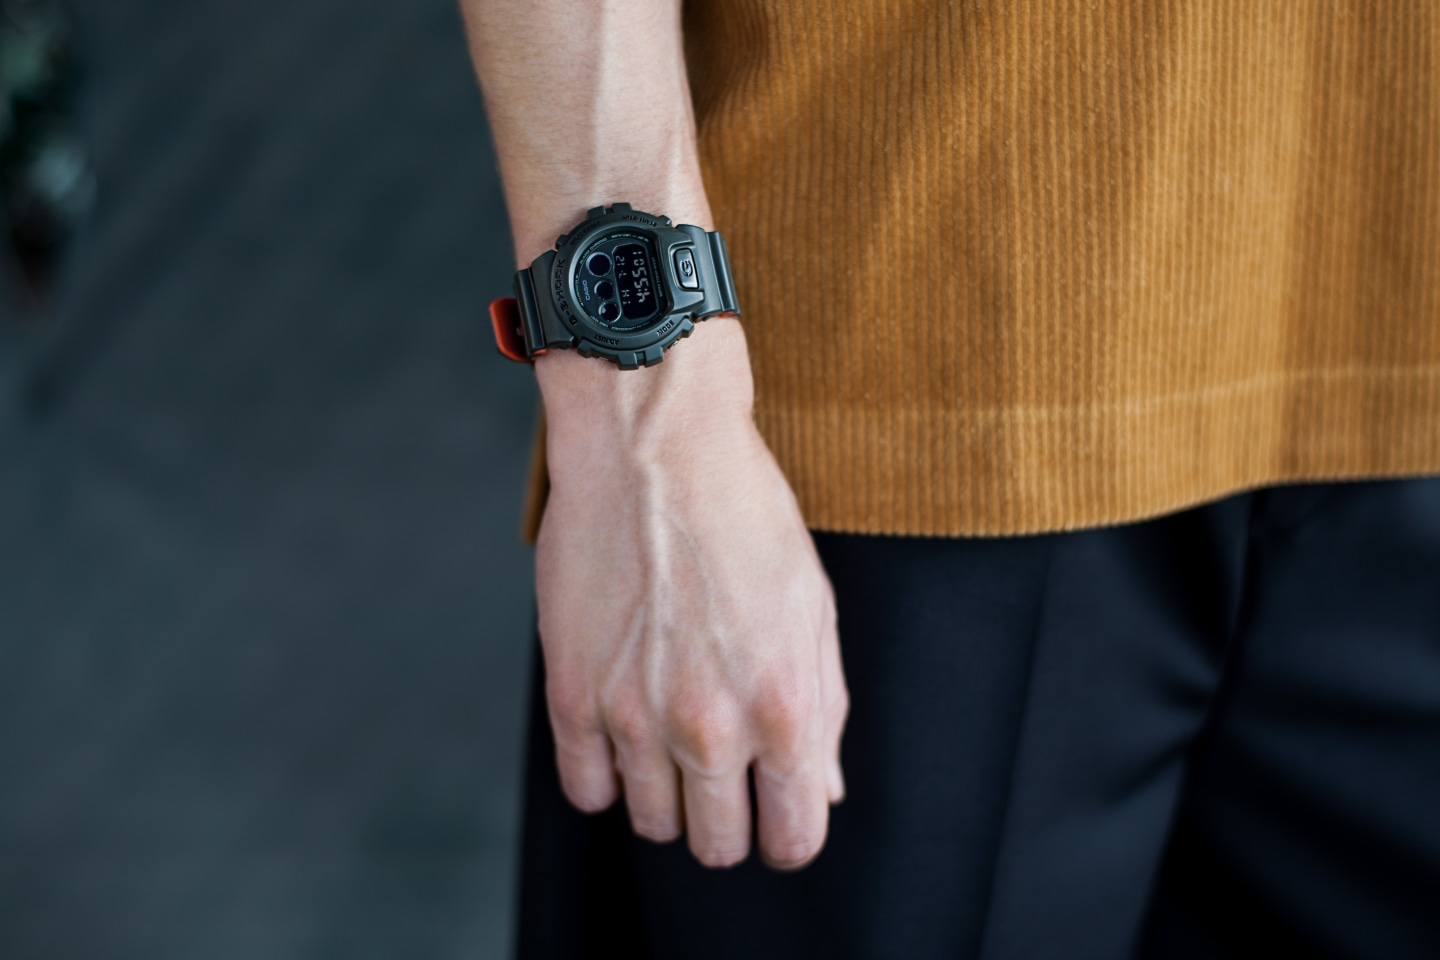 G-SHOCK's DW6900LU Watch Proves Its Legacy Is Indestructible